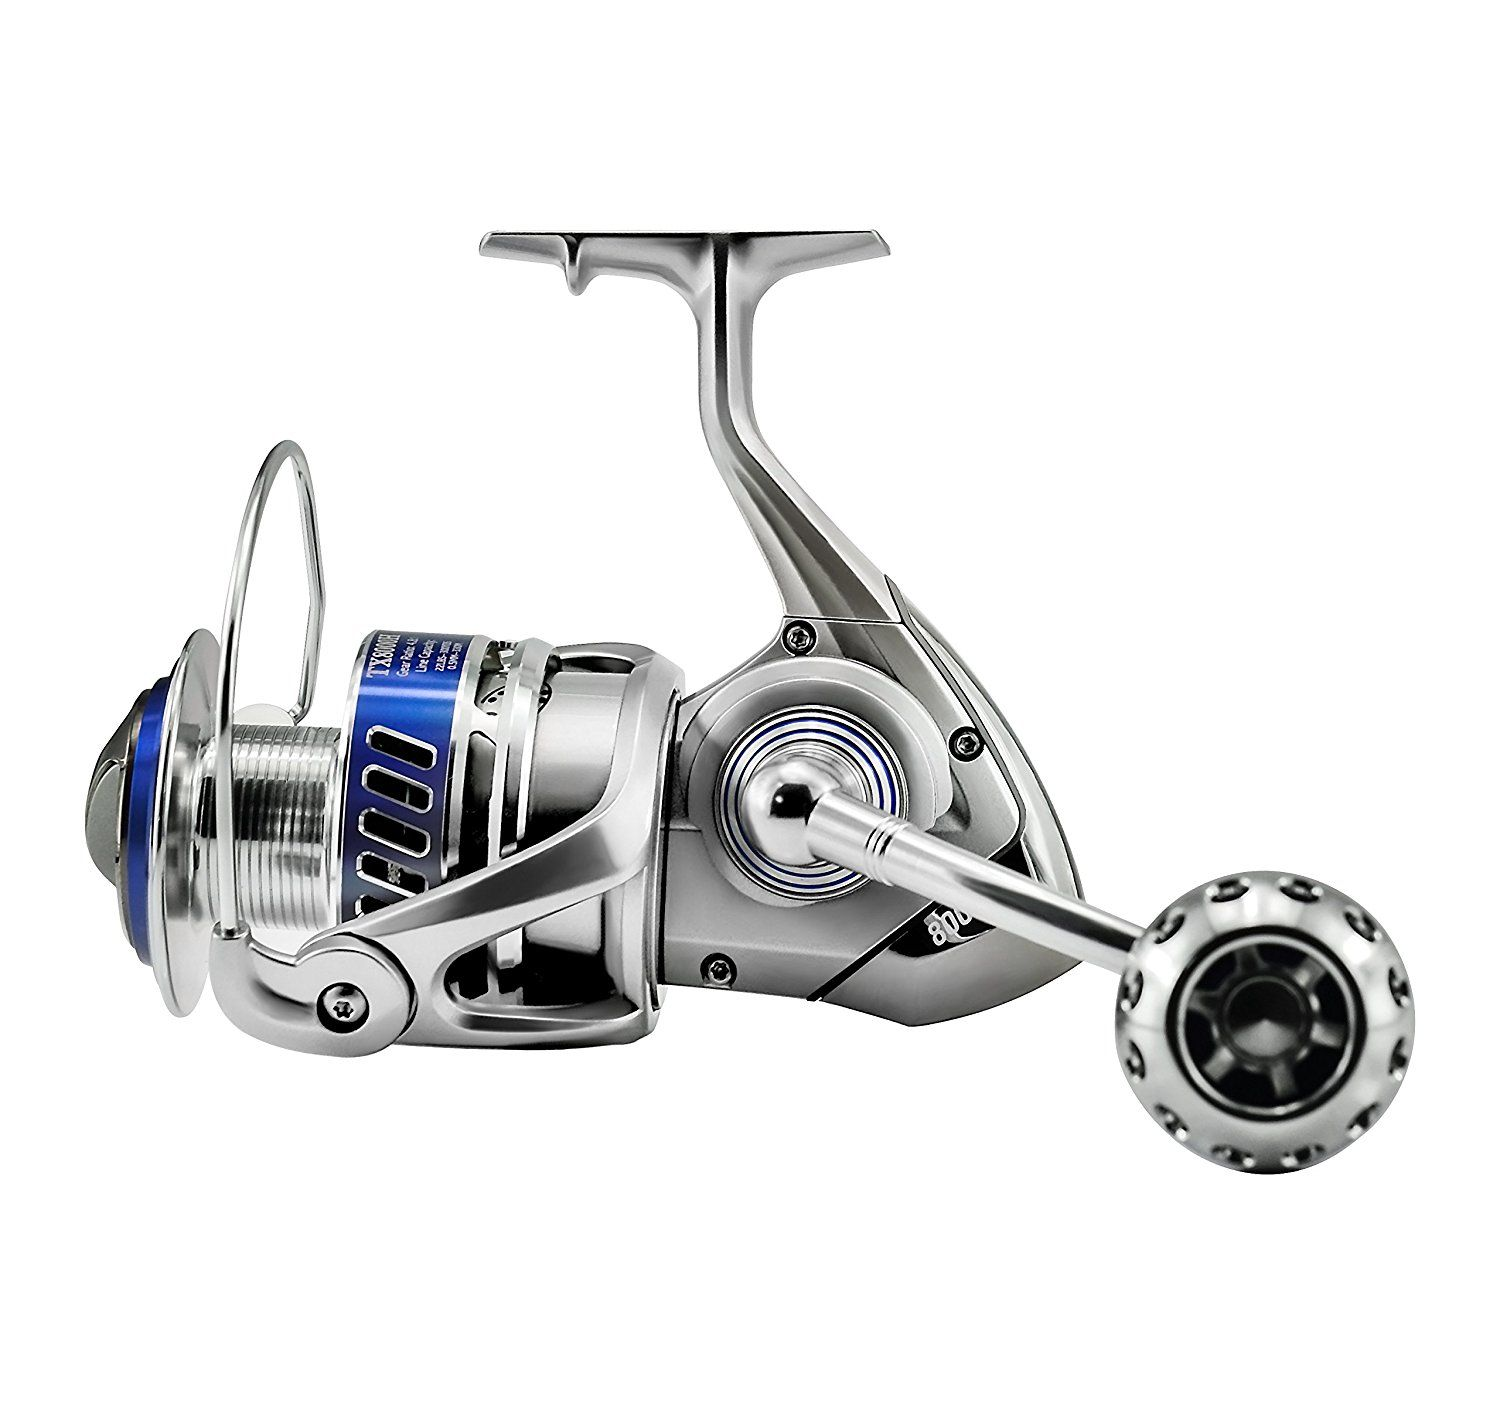 2af48caad26 Amazon.com : GOMEXUS Saltwater Fishing Reel Spinning Comparable to Daiwa  Saltiga : Sports & Outdoors